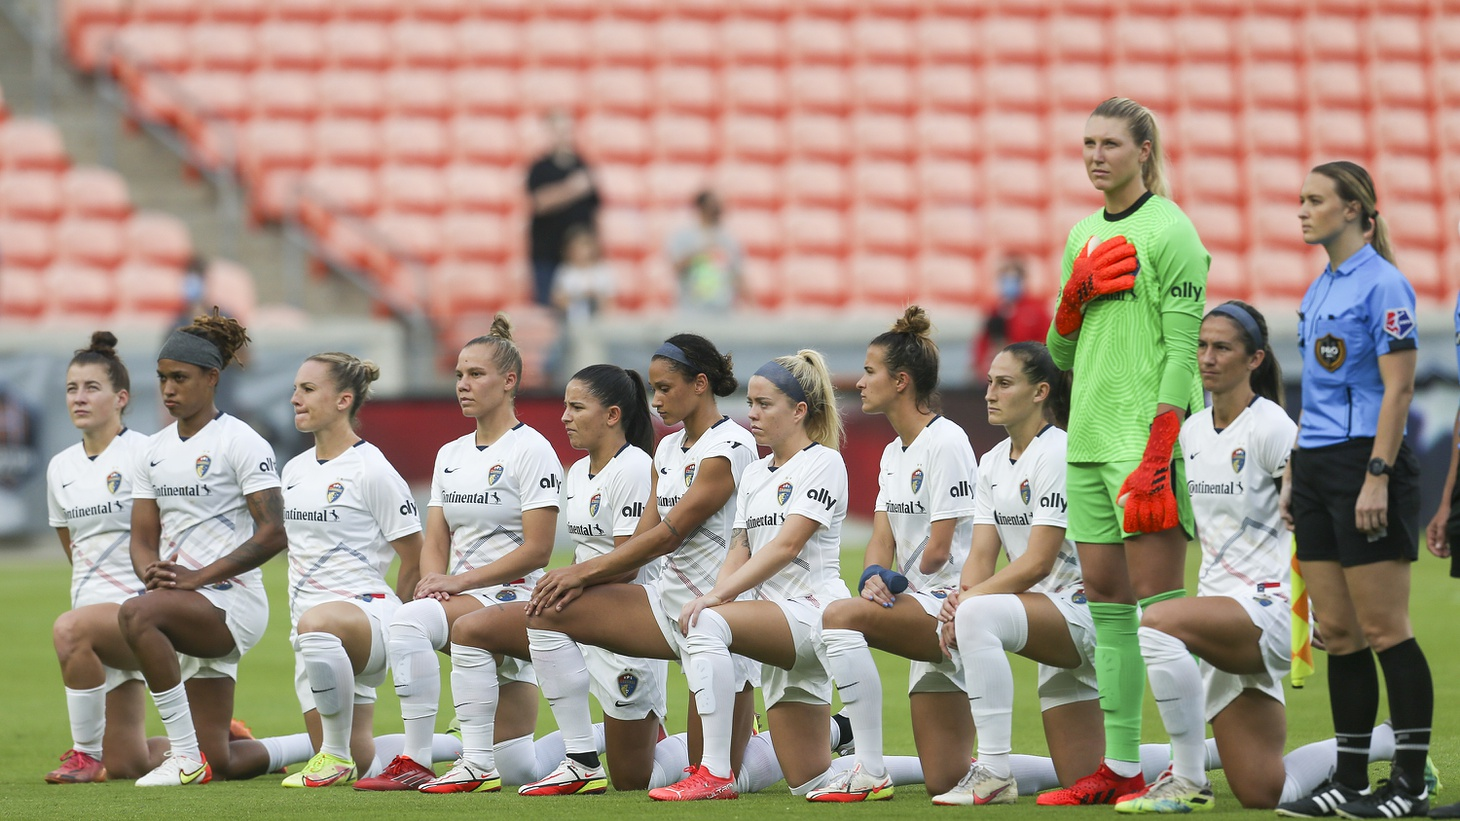 The North Carolina Courage kneel to protest the sexual abuse issues plaguing the women's league during a NWSL soccer match at BBVA Stadium, Houston, Texas, USA, Oct 10, 2021.